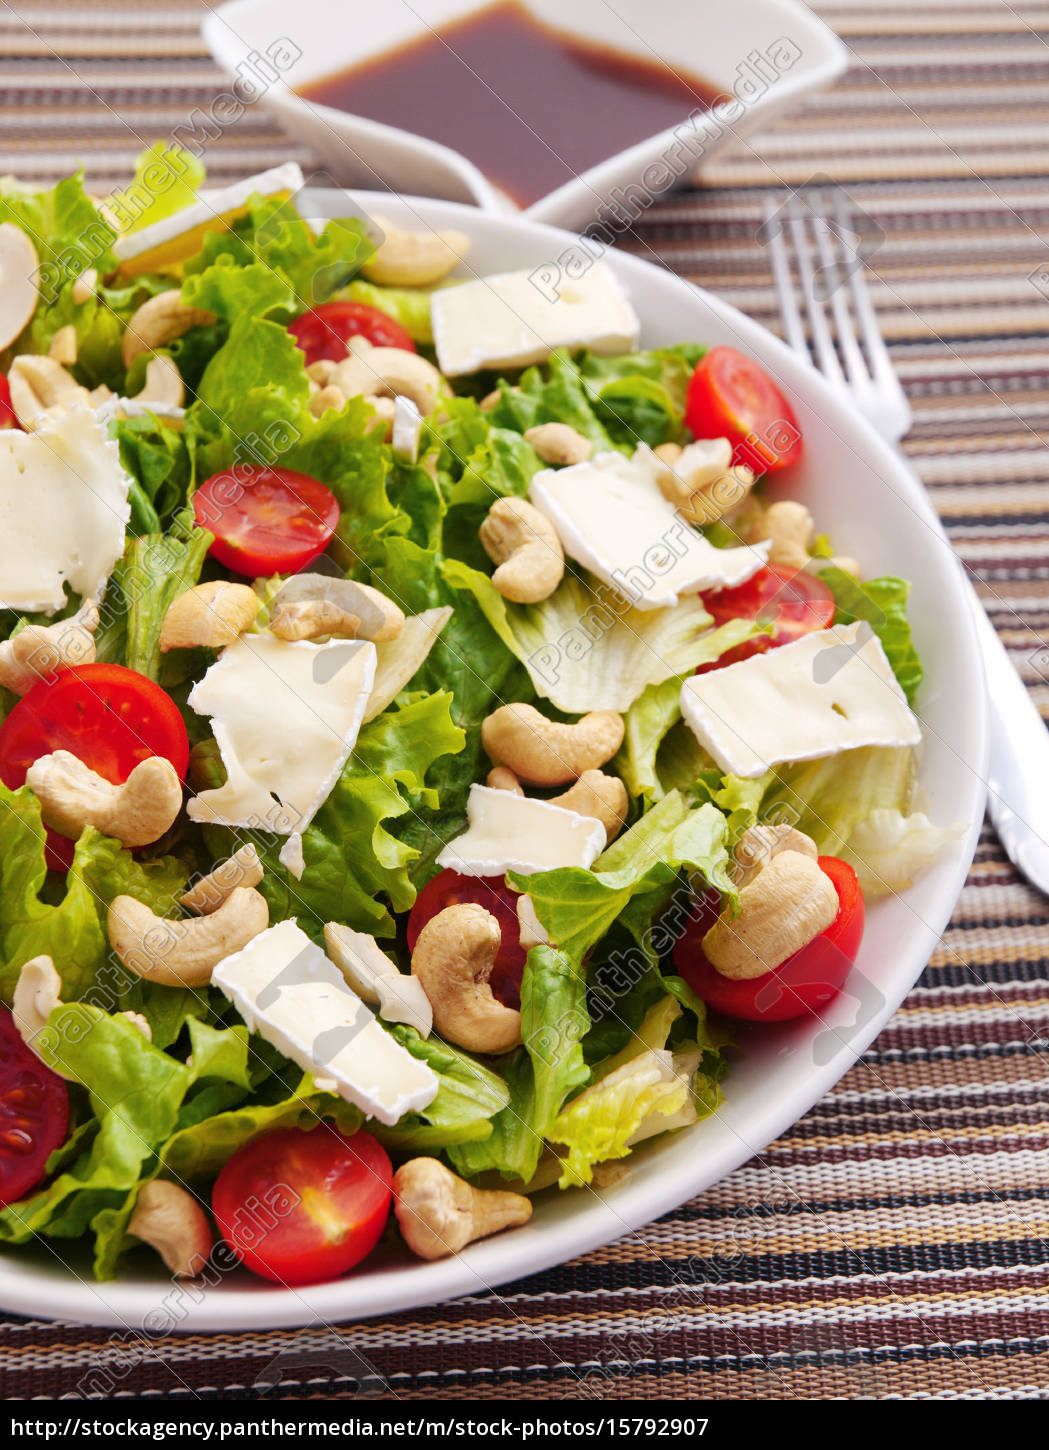 green, salad, with, brie, , cashew, and - 15792907